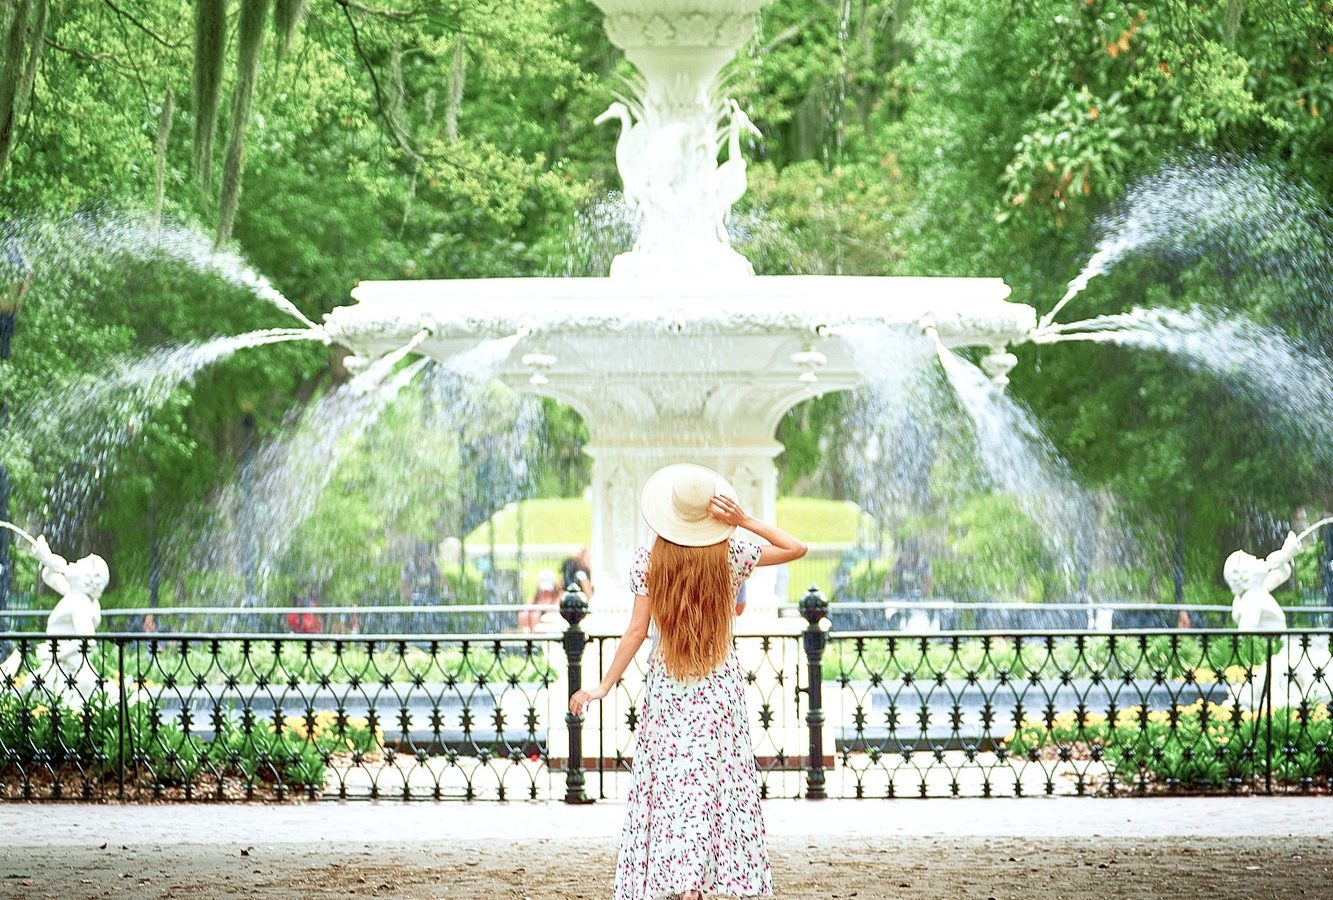 A woman in a white floral long dress, with long hair, and a white sun hat standing in front of the famous Forsyth Fountain. The fountain is very large and has a large middle fountain that has a person standing at the top and water coming out from several places. Behind the fountain are tons of trees with Spanish moss hanging from them. A must see spot during your 3 days in Savannah.